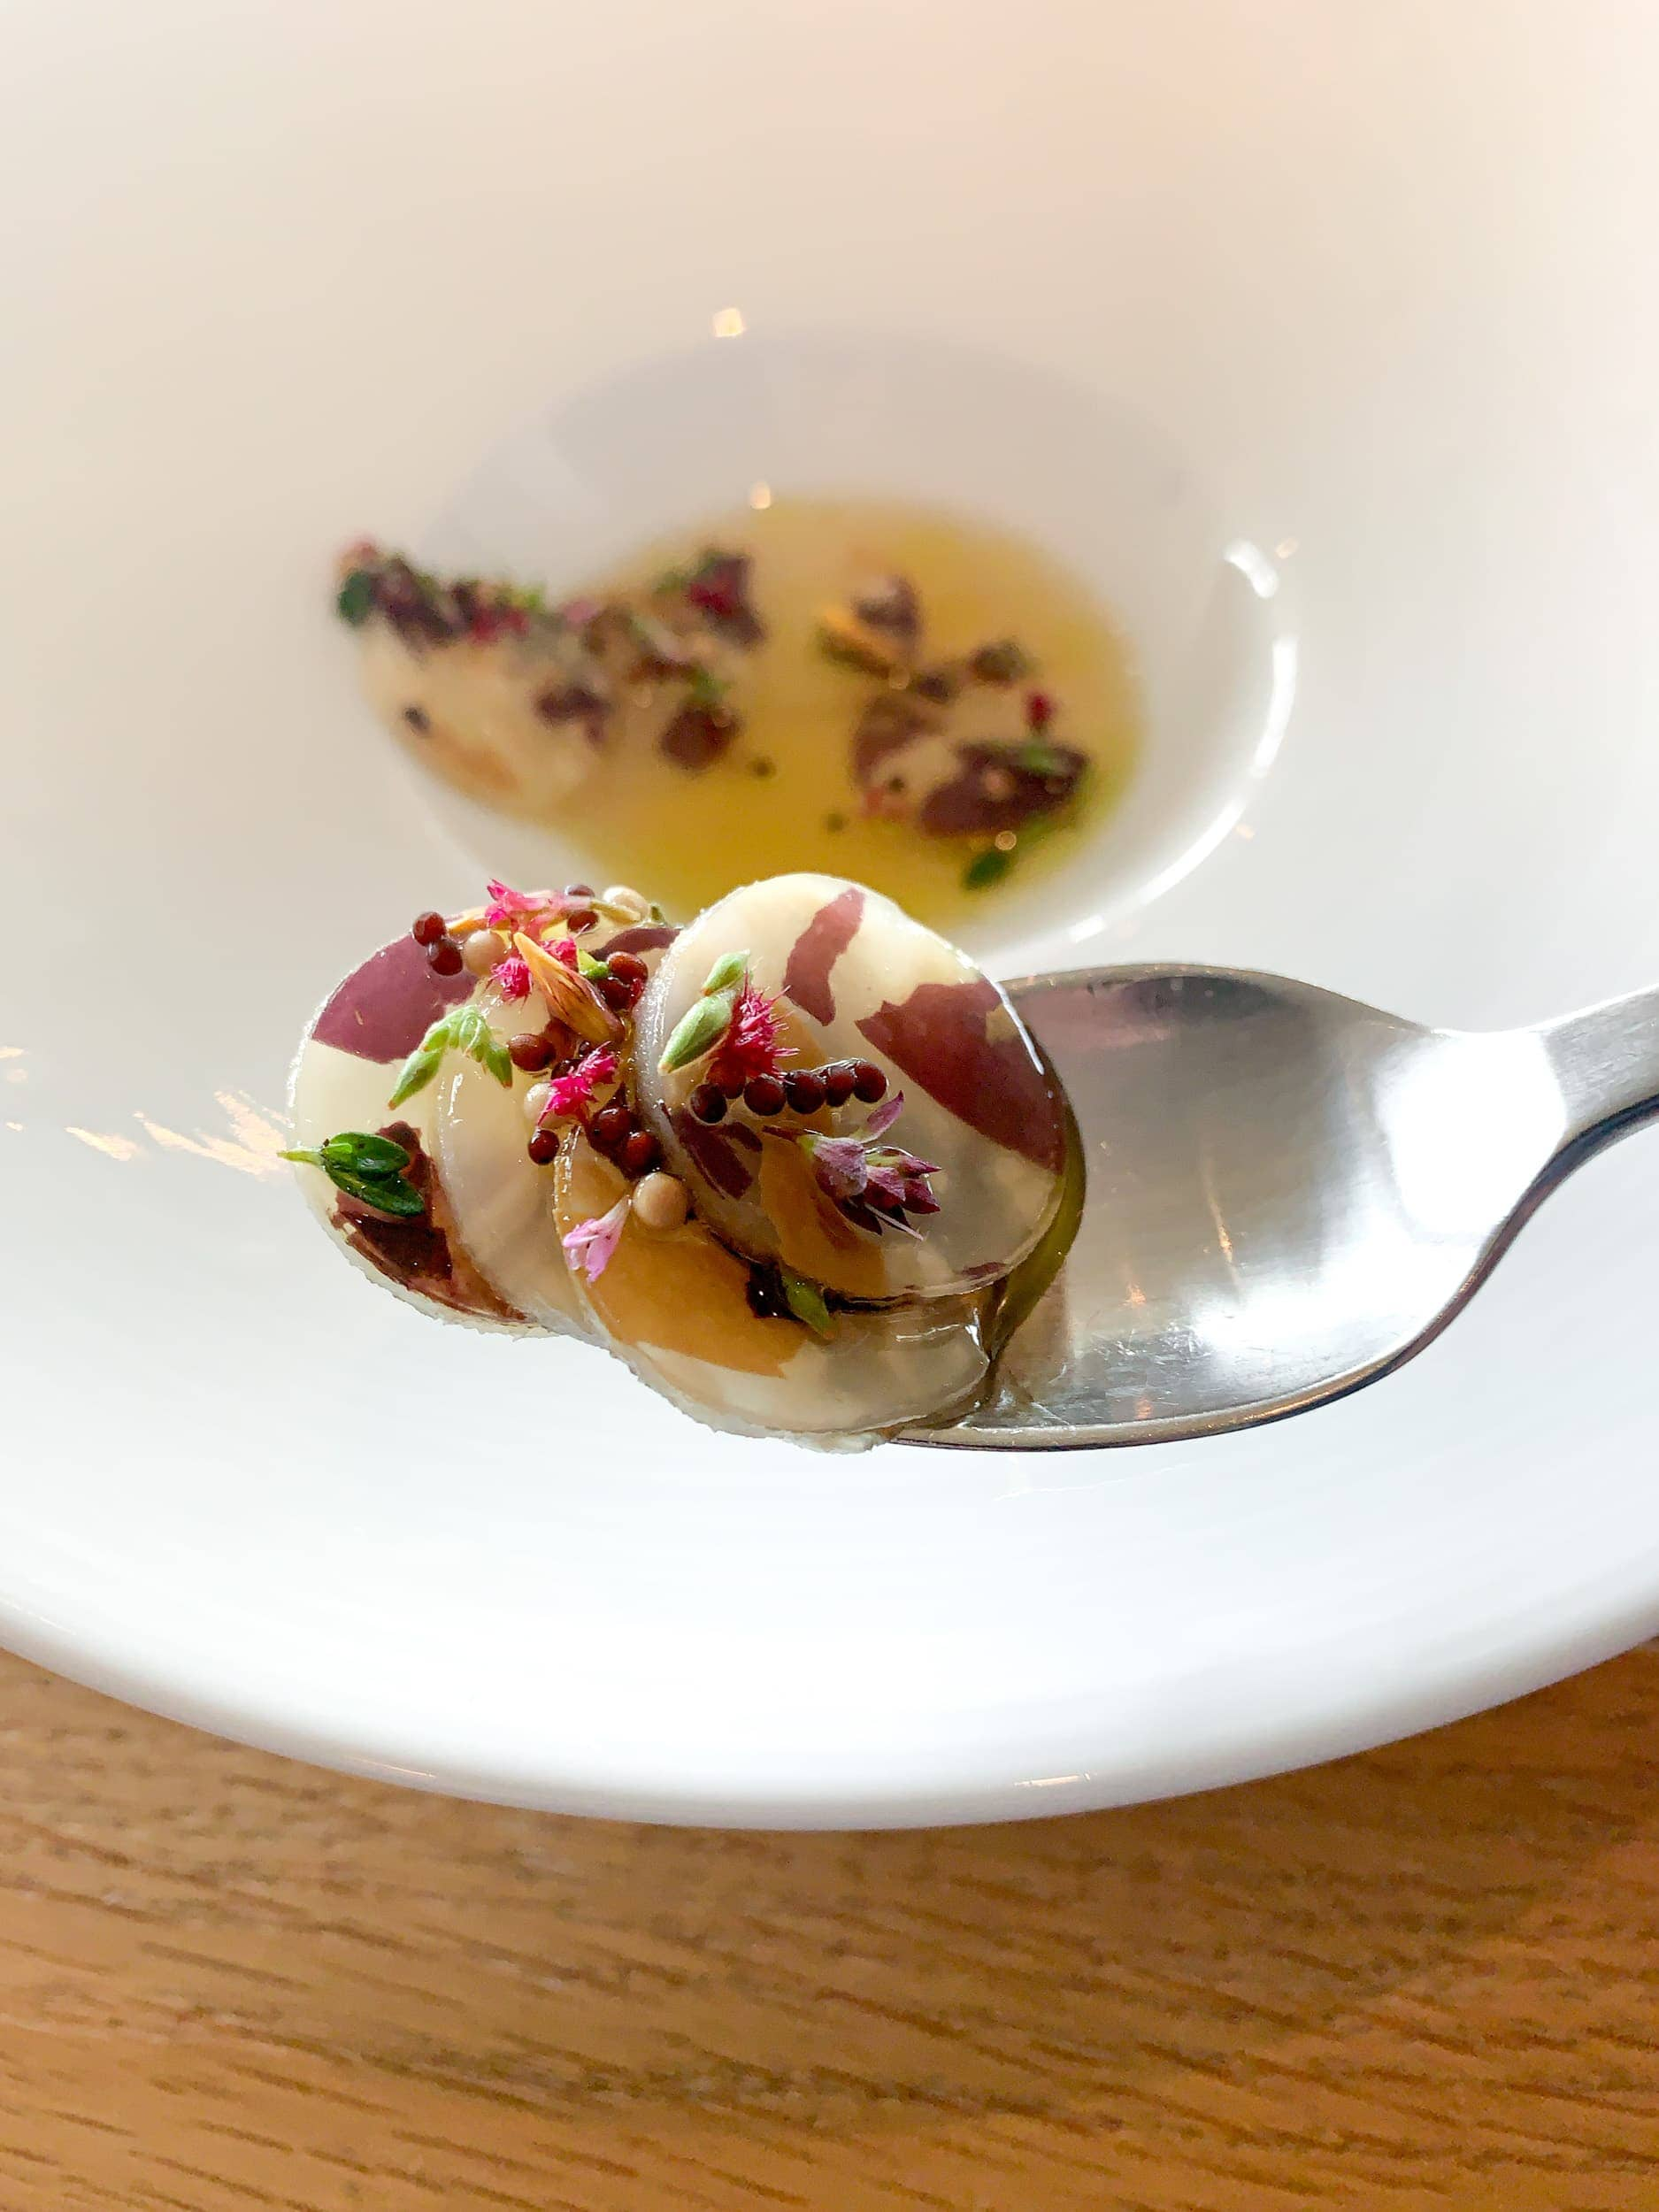 A spoonful of lightly pickled celeriac and seeds